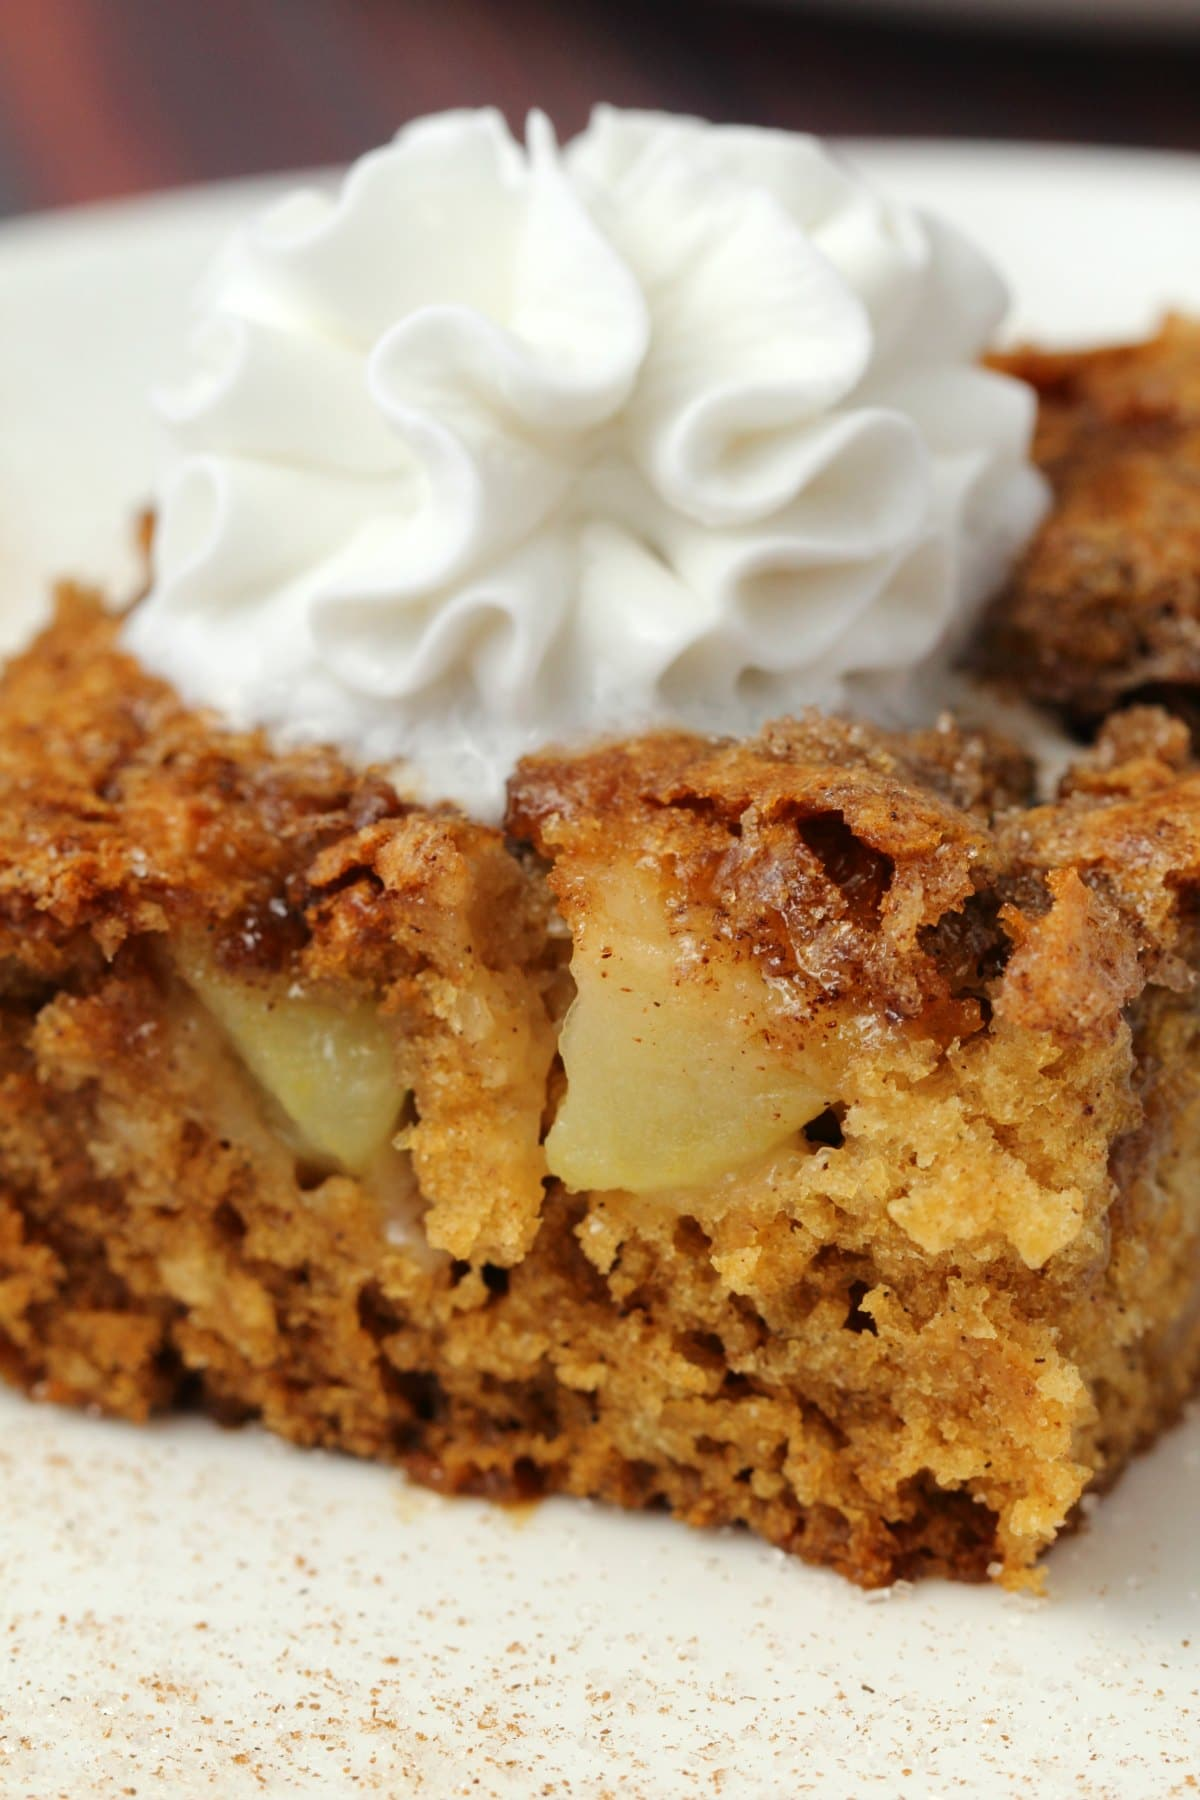 Slice of vegan apple cake topped with vegan whipped cream on a white plate.